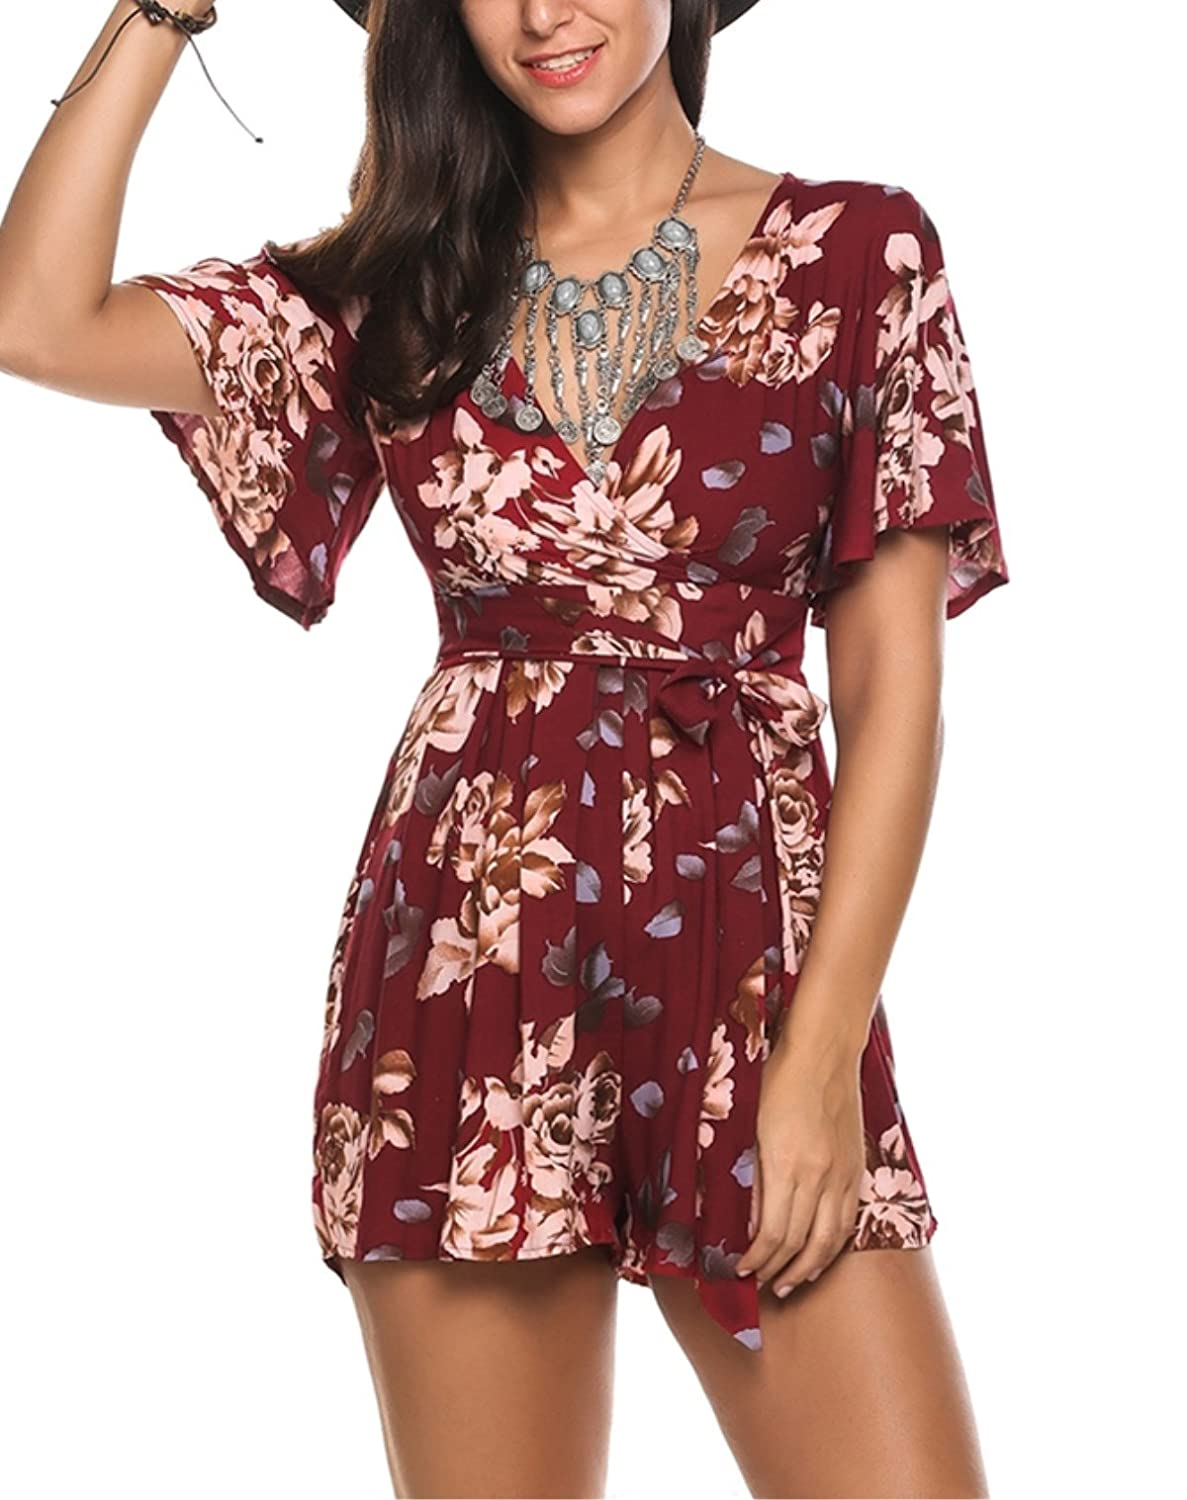 Kancystore Women's Cross Front Floral Printed Deep V Neck Romper Jumpsuit